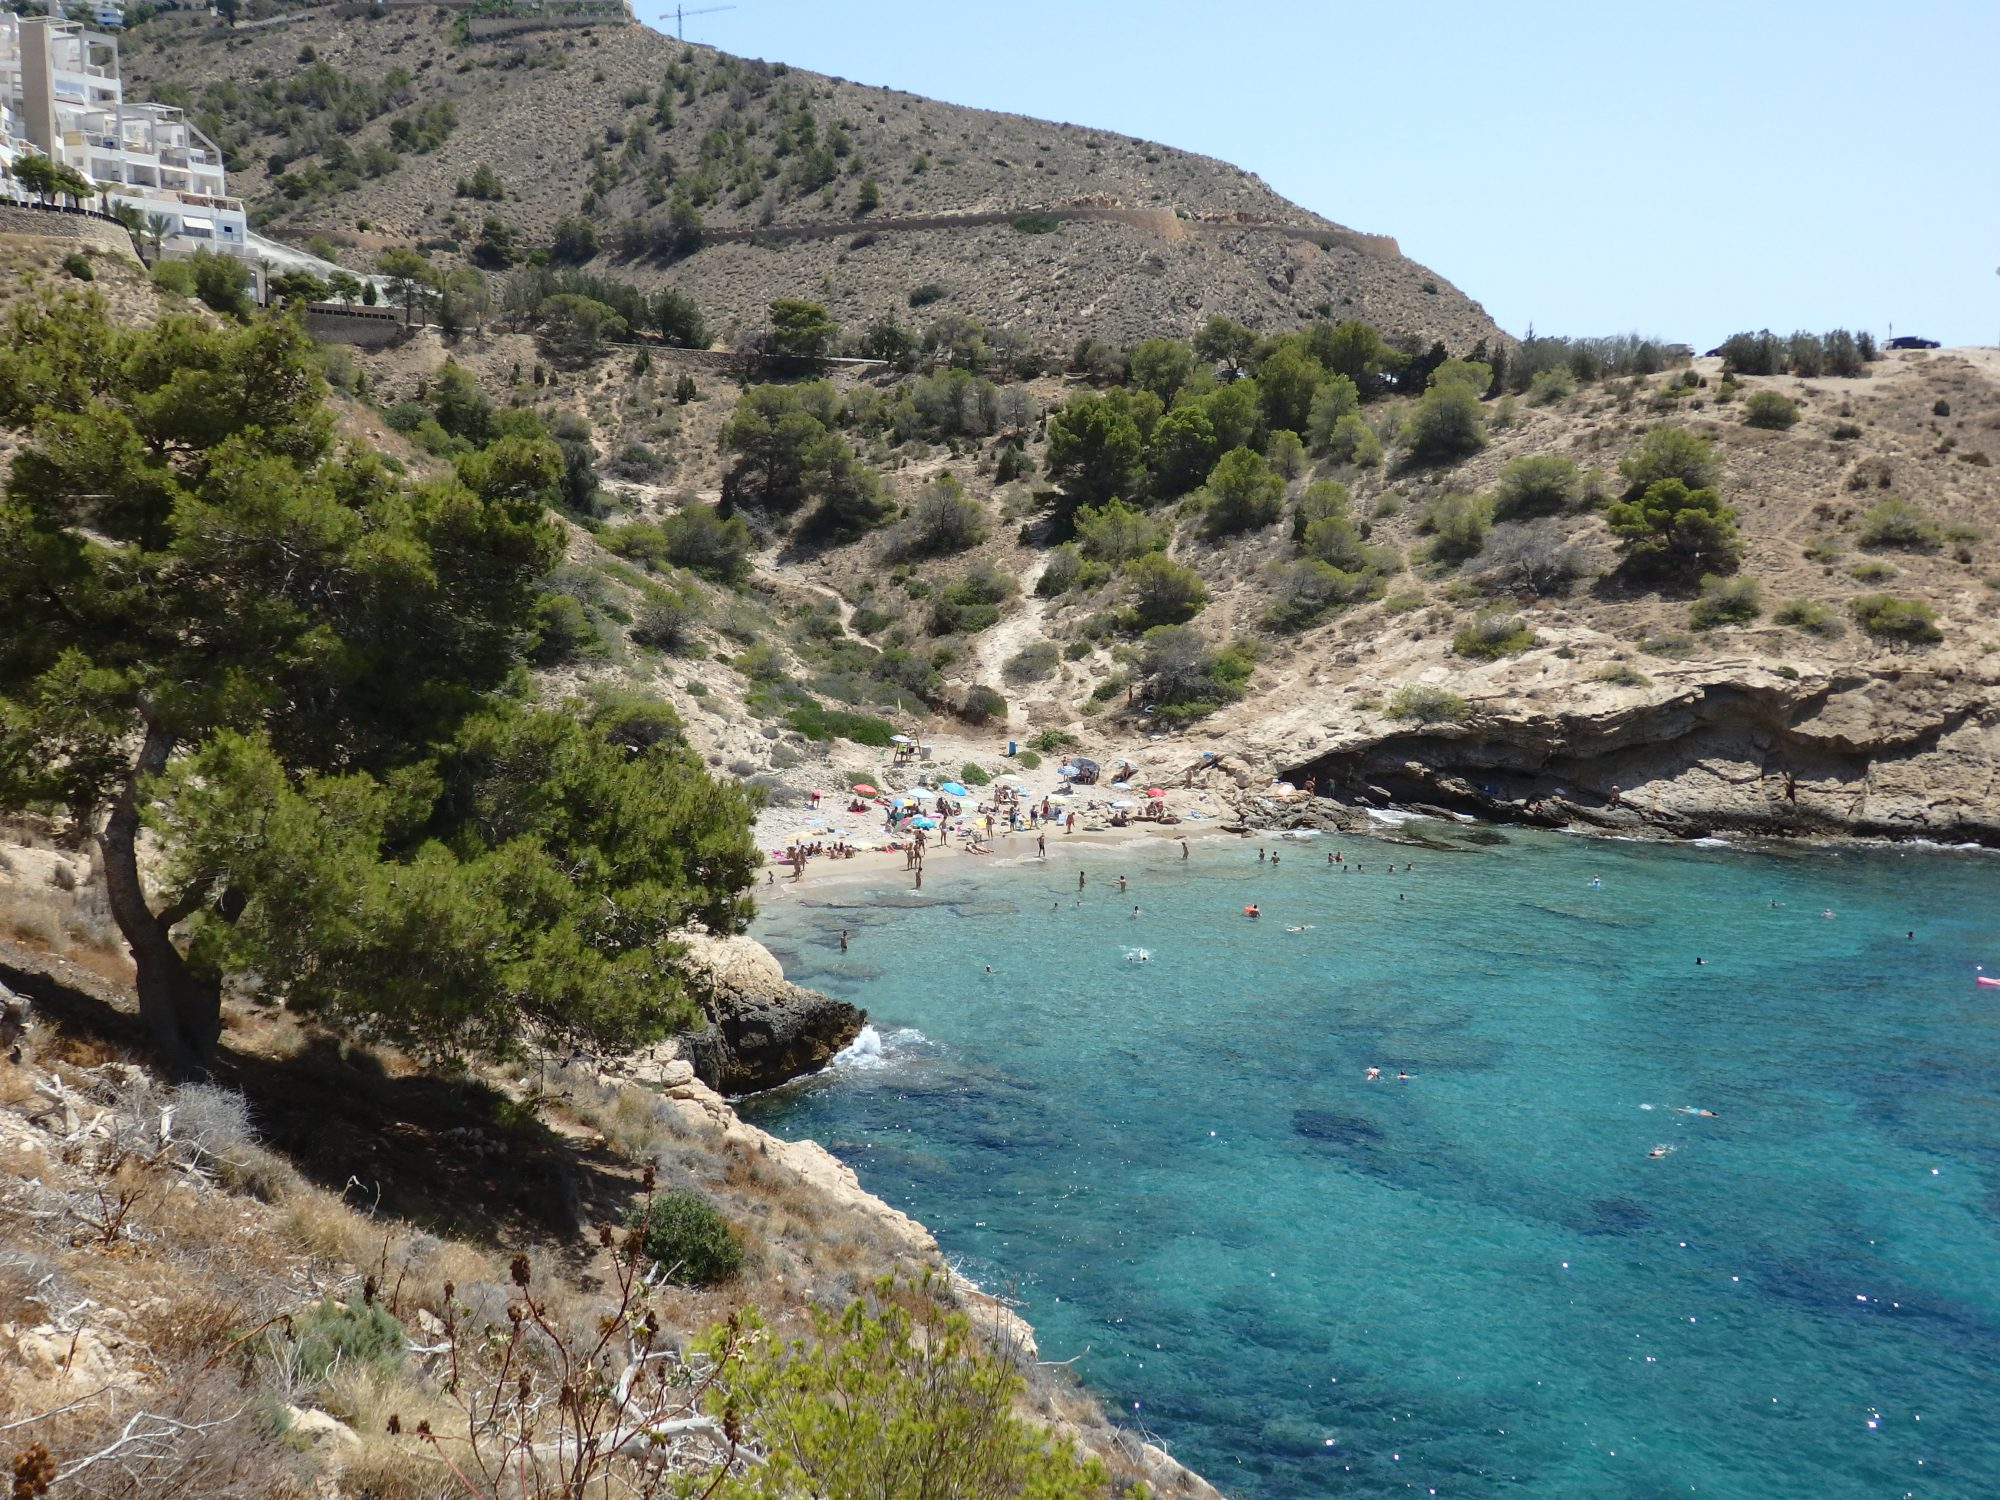 Cala Almadrava Beach outside Benidorm. Look how clear the water is!